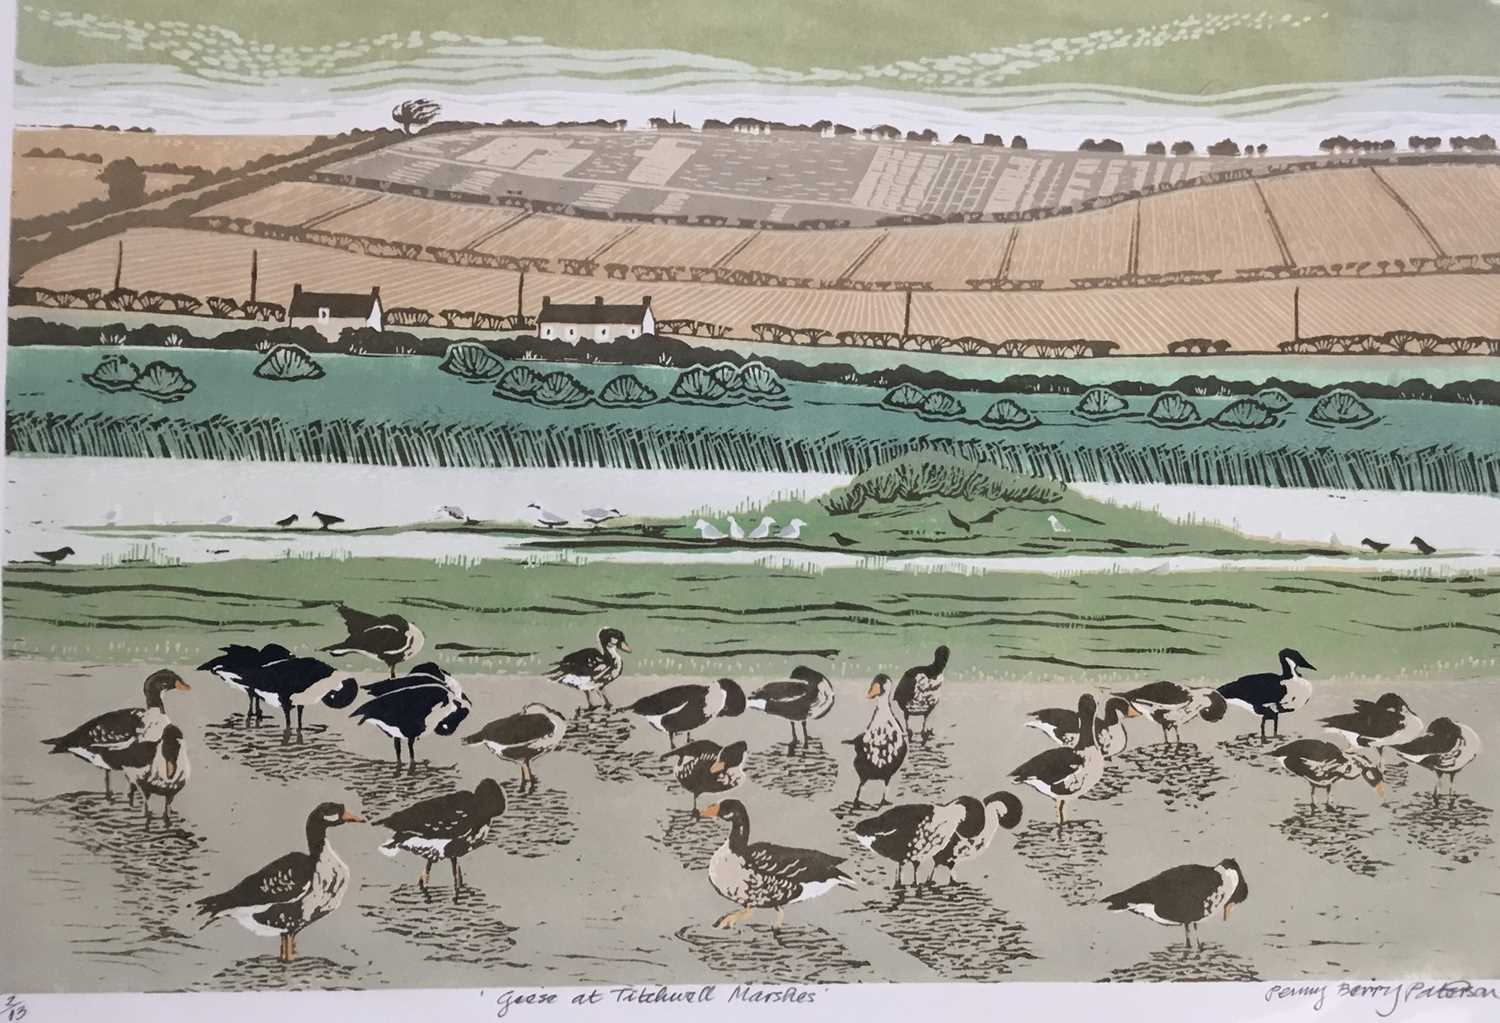 Penny Berry Paterson (1941-2021) colour linocut print, Geese at Titchwall Marshes, signed and number